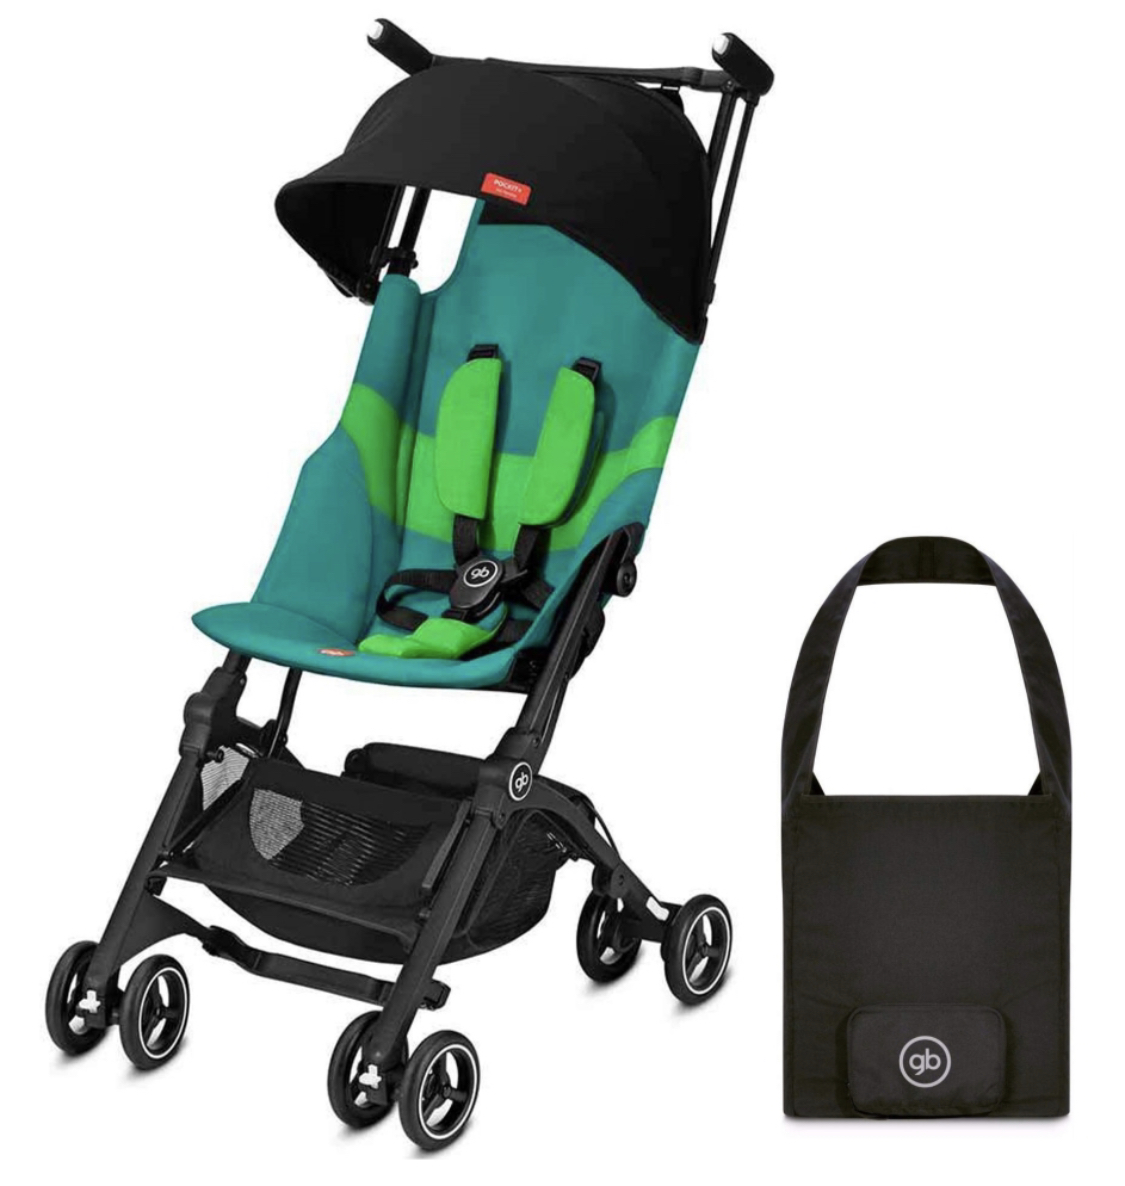 Compact Stroller Singapore Rent Gb Pockit All Terrain Travel Stroller Velvetgear Singapore